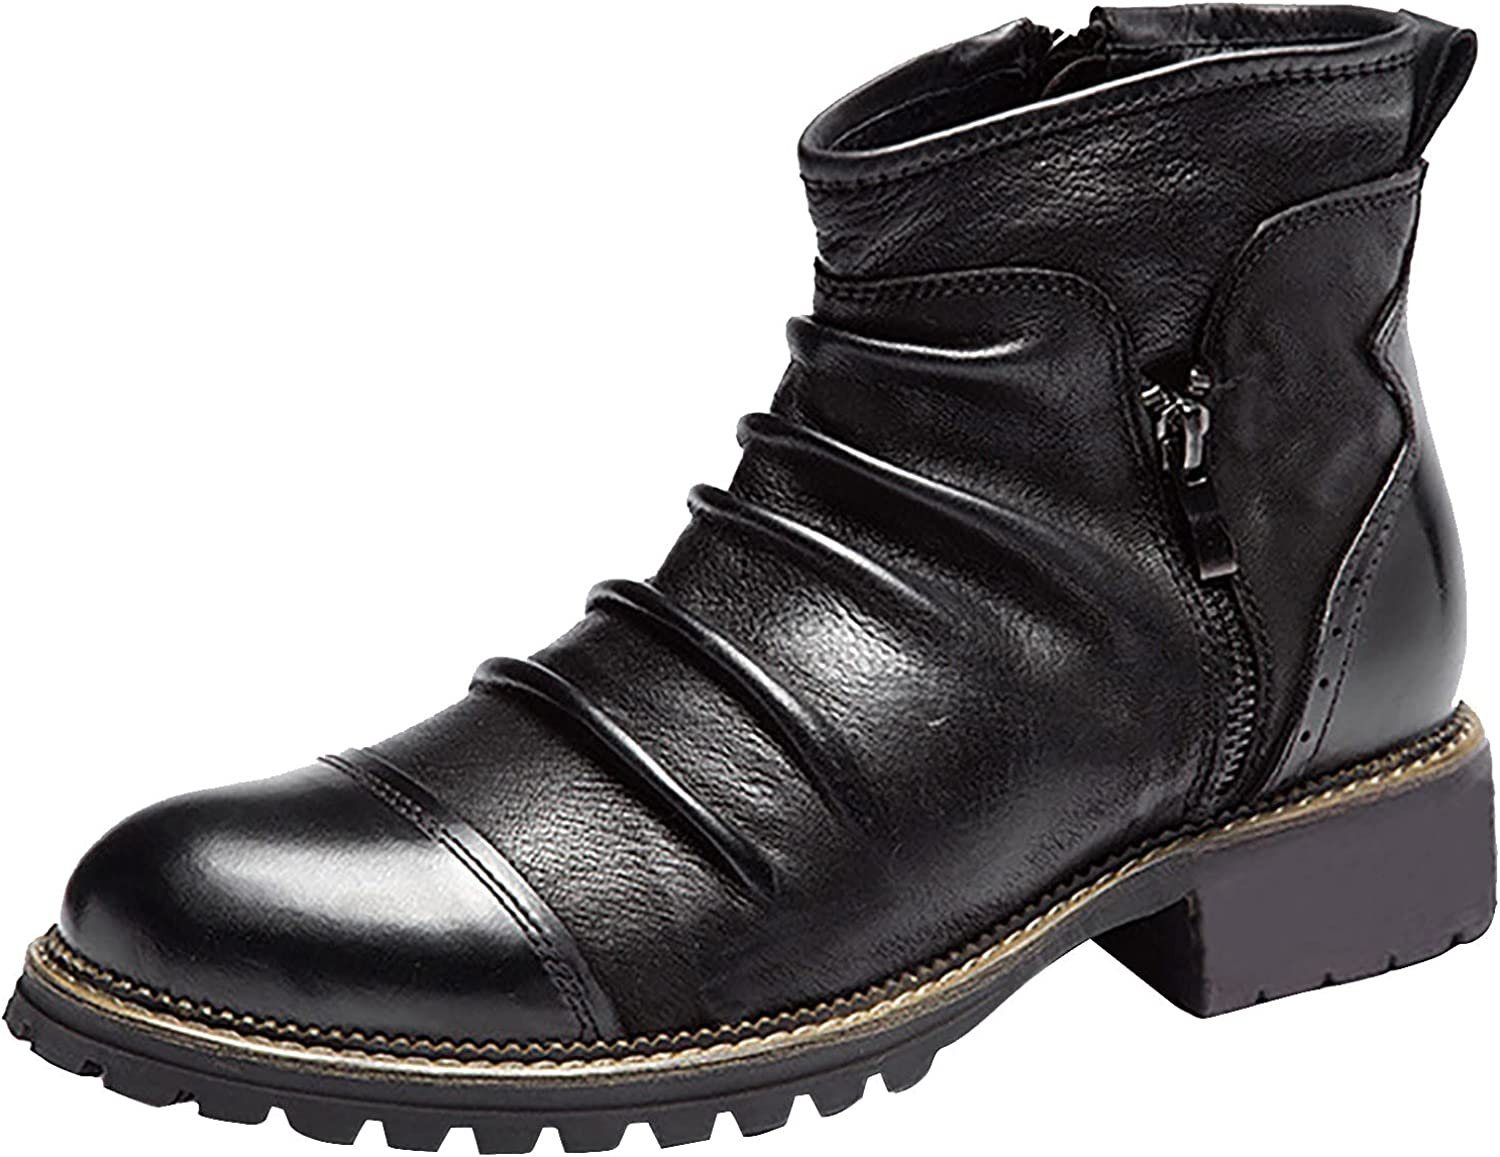 Work Boots For favorite Men Retro Casual Cowboy L Max 83% OFF Stitching Western